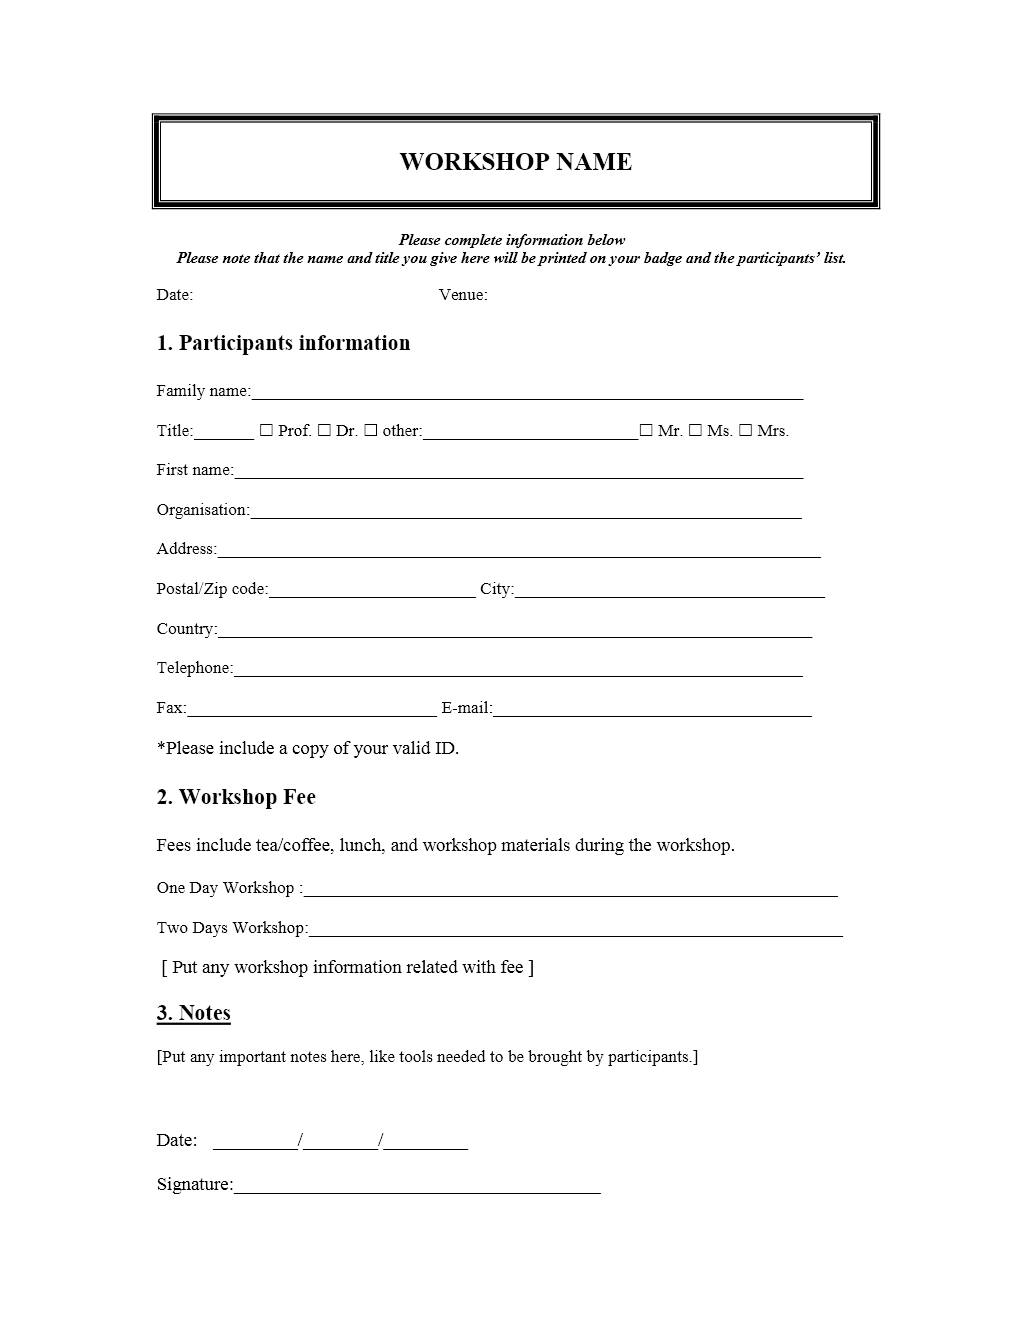 registration form template word   April.onthemarch.co